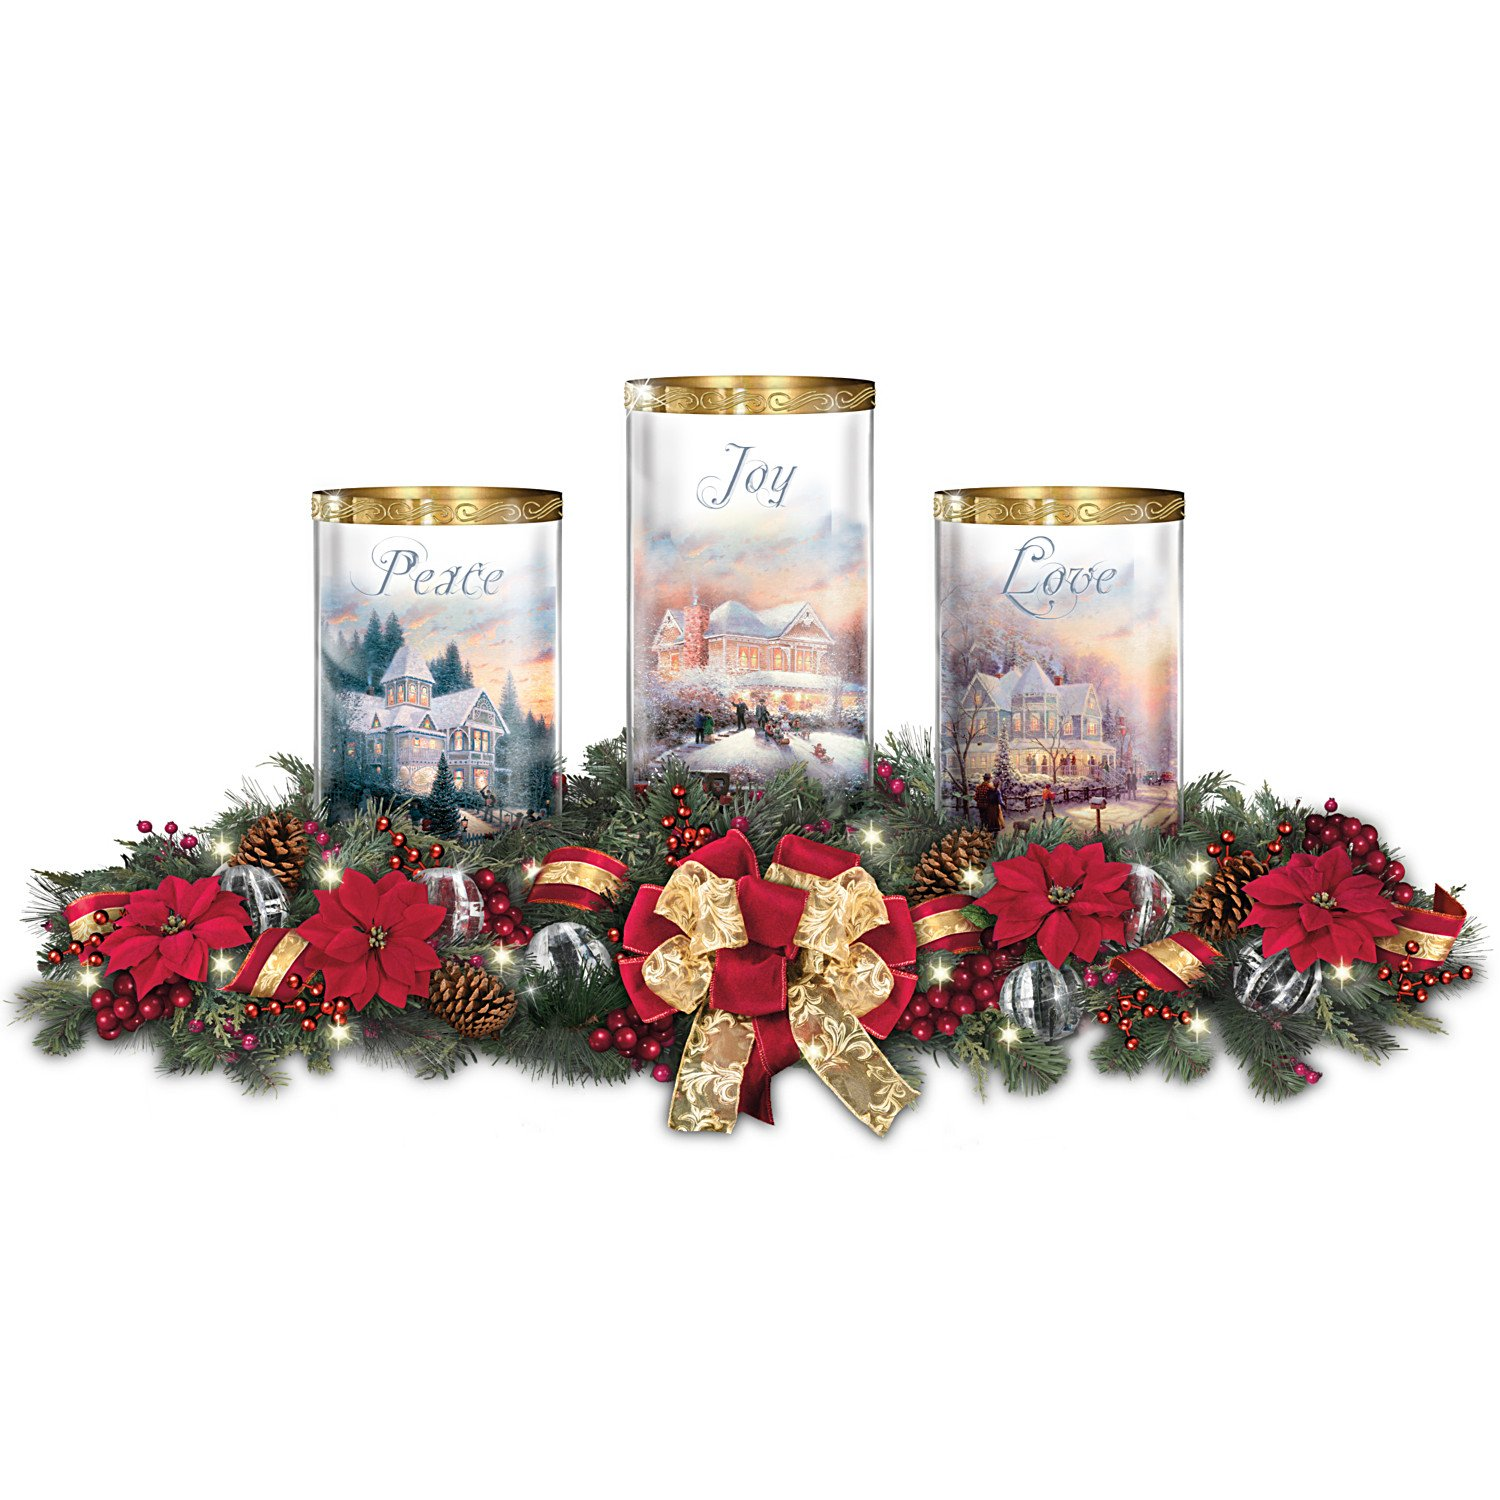 Thomas Kinkade Holiday Artwork Lighted Centerpiece with Flameless Candles by The Bradford Exchange